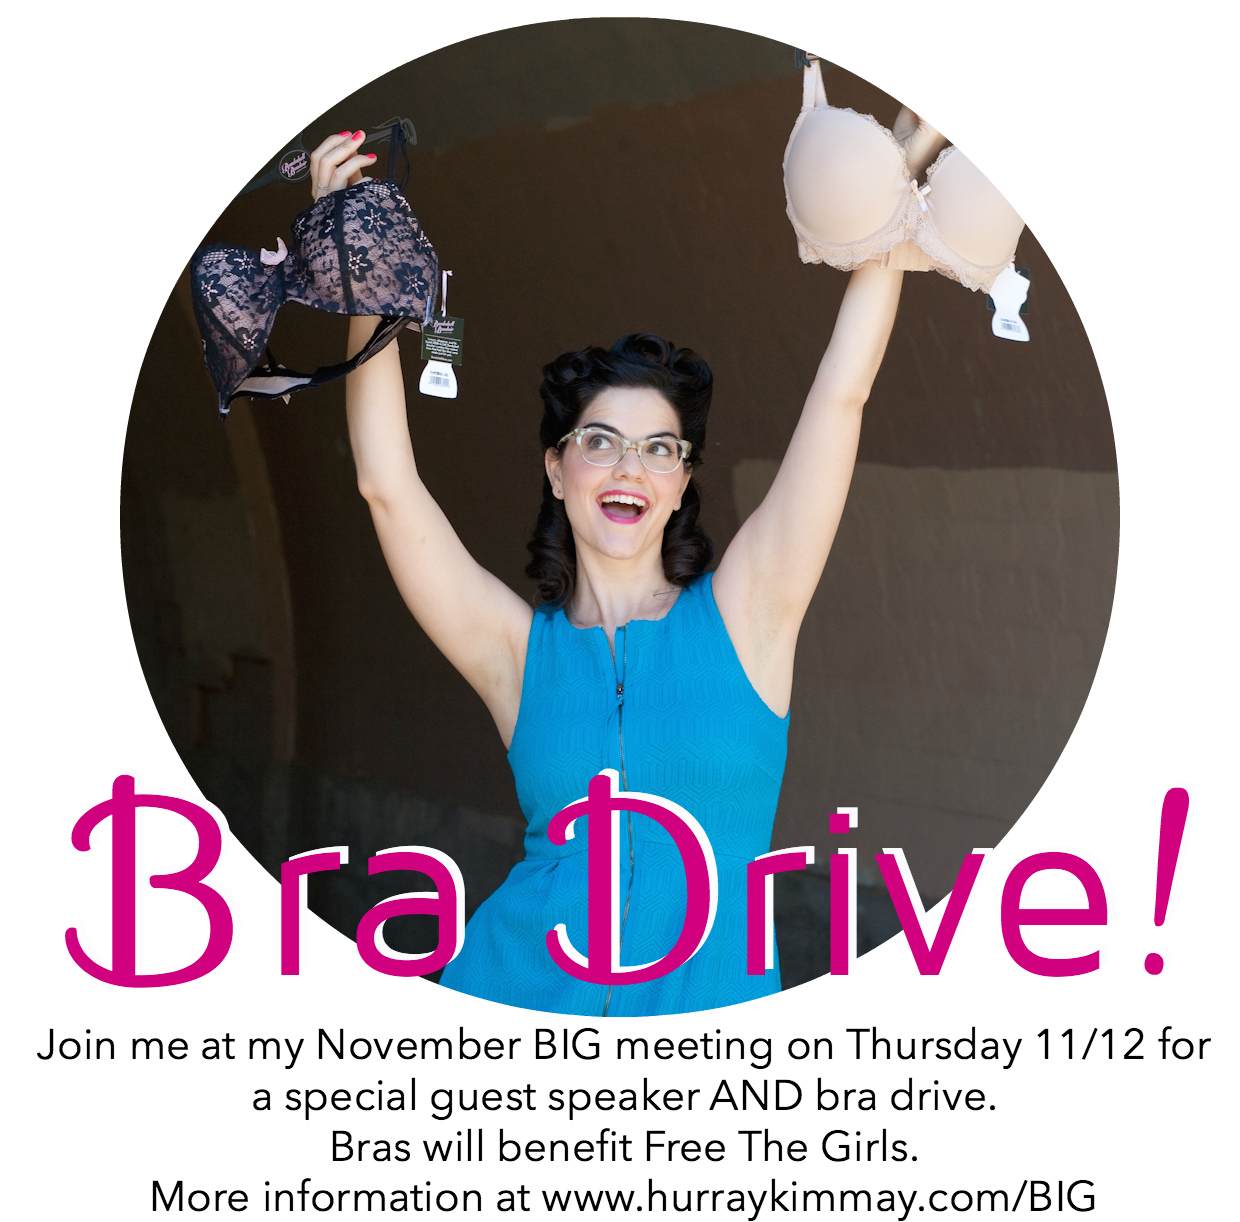 Bra Drive to Benefit Free the Girls